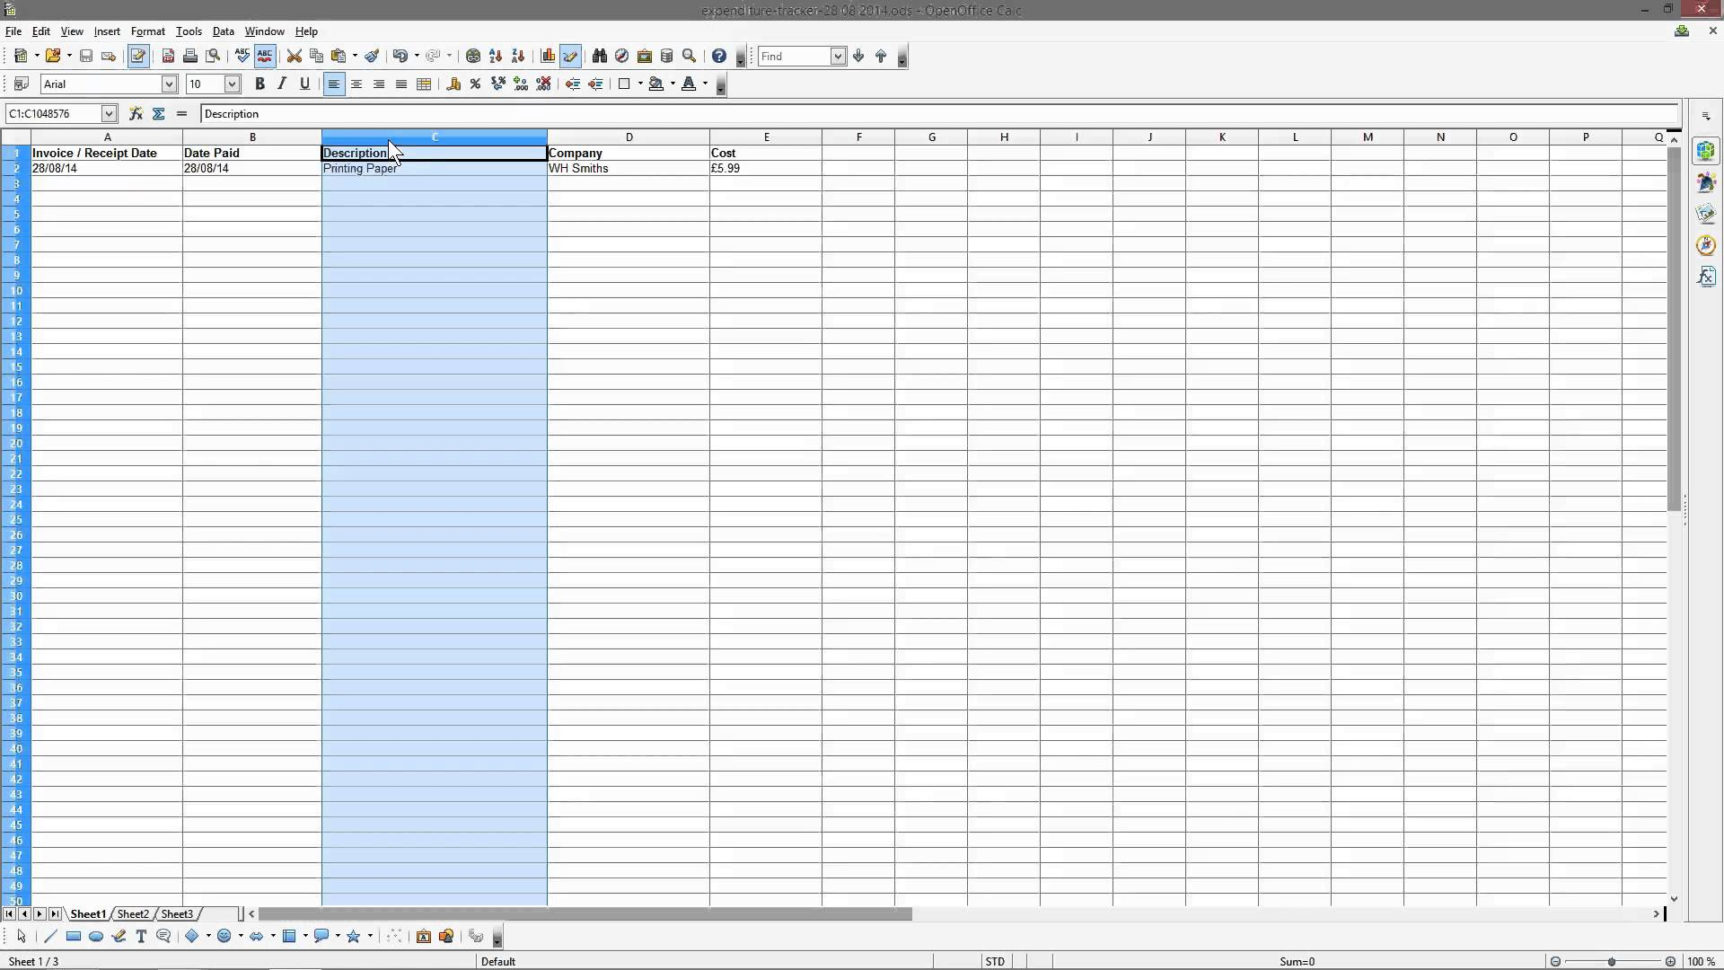 Income And Expenses Spreadsheet For Small Business To Income And Expenses Spreadsheet Template For Small Business